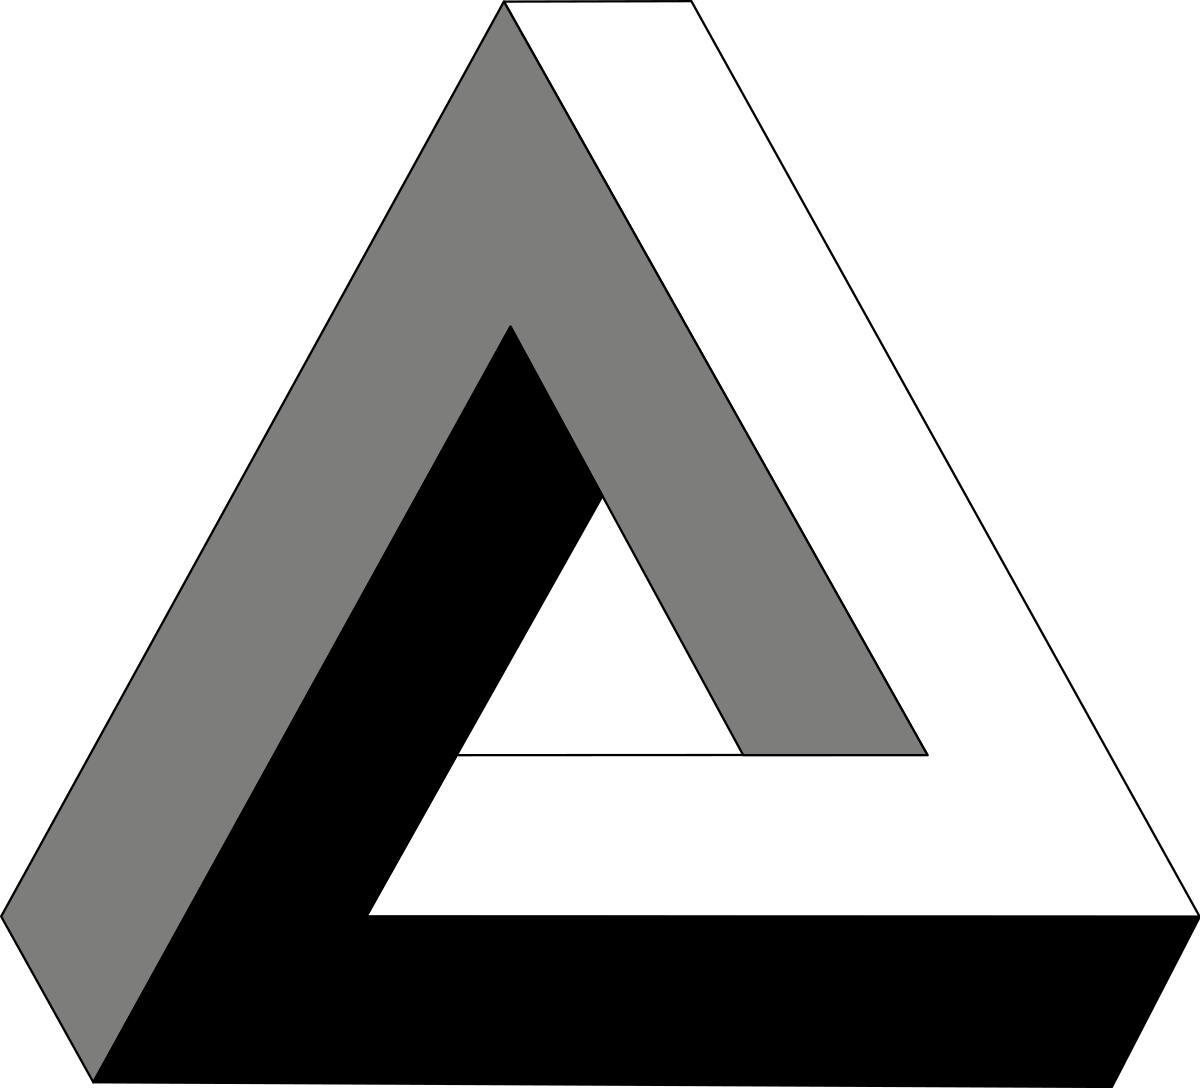 Vector loop impossible. Penrose triangle wikipedia